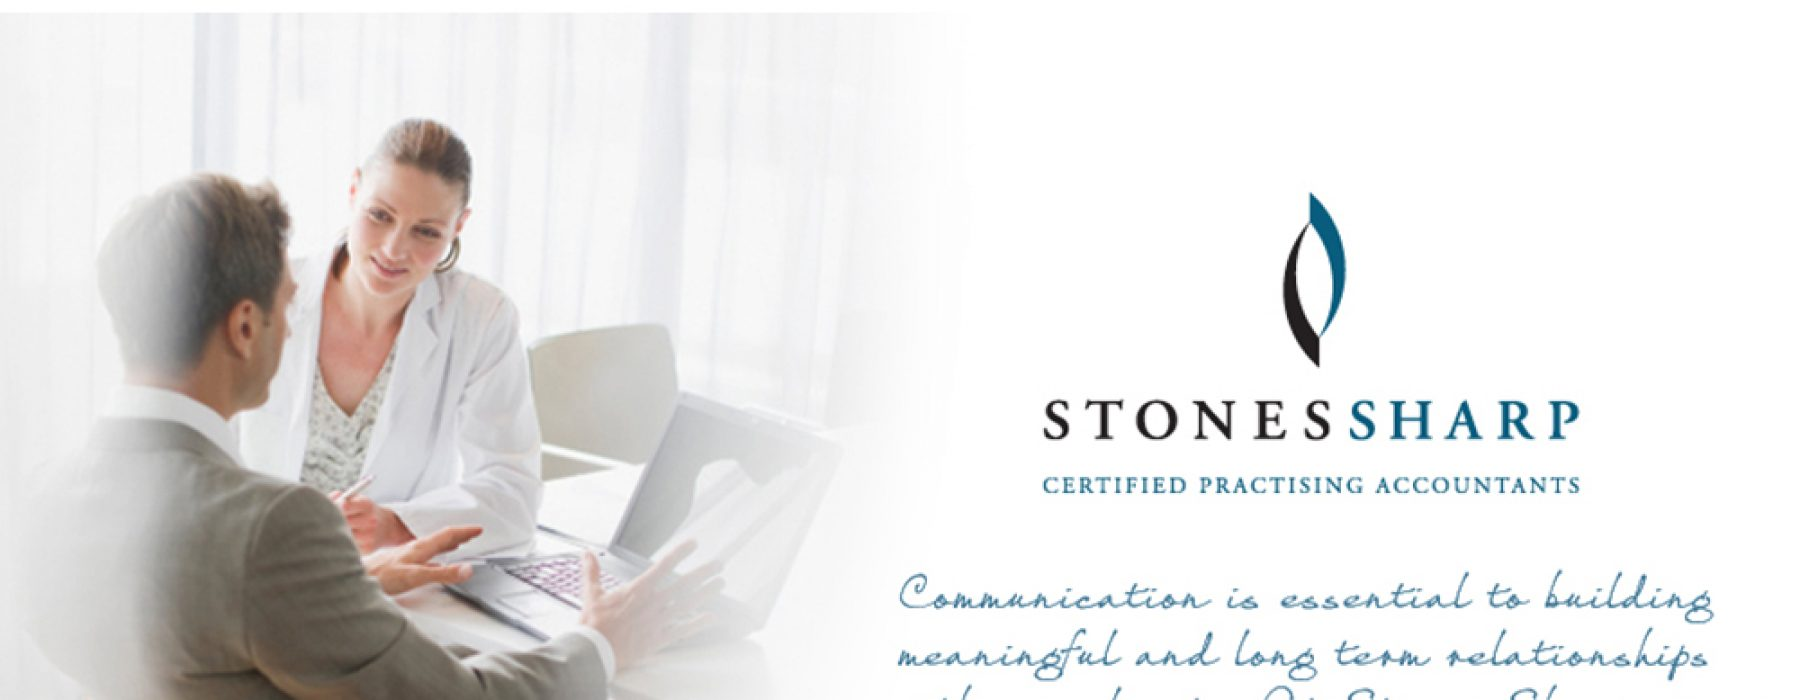 Stone Sharp Accountants Reviews